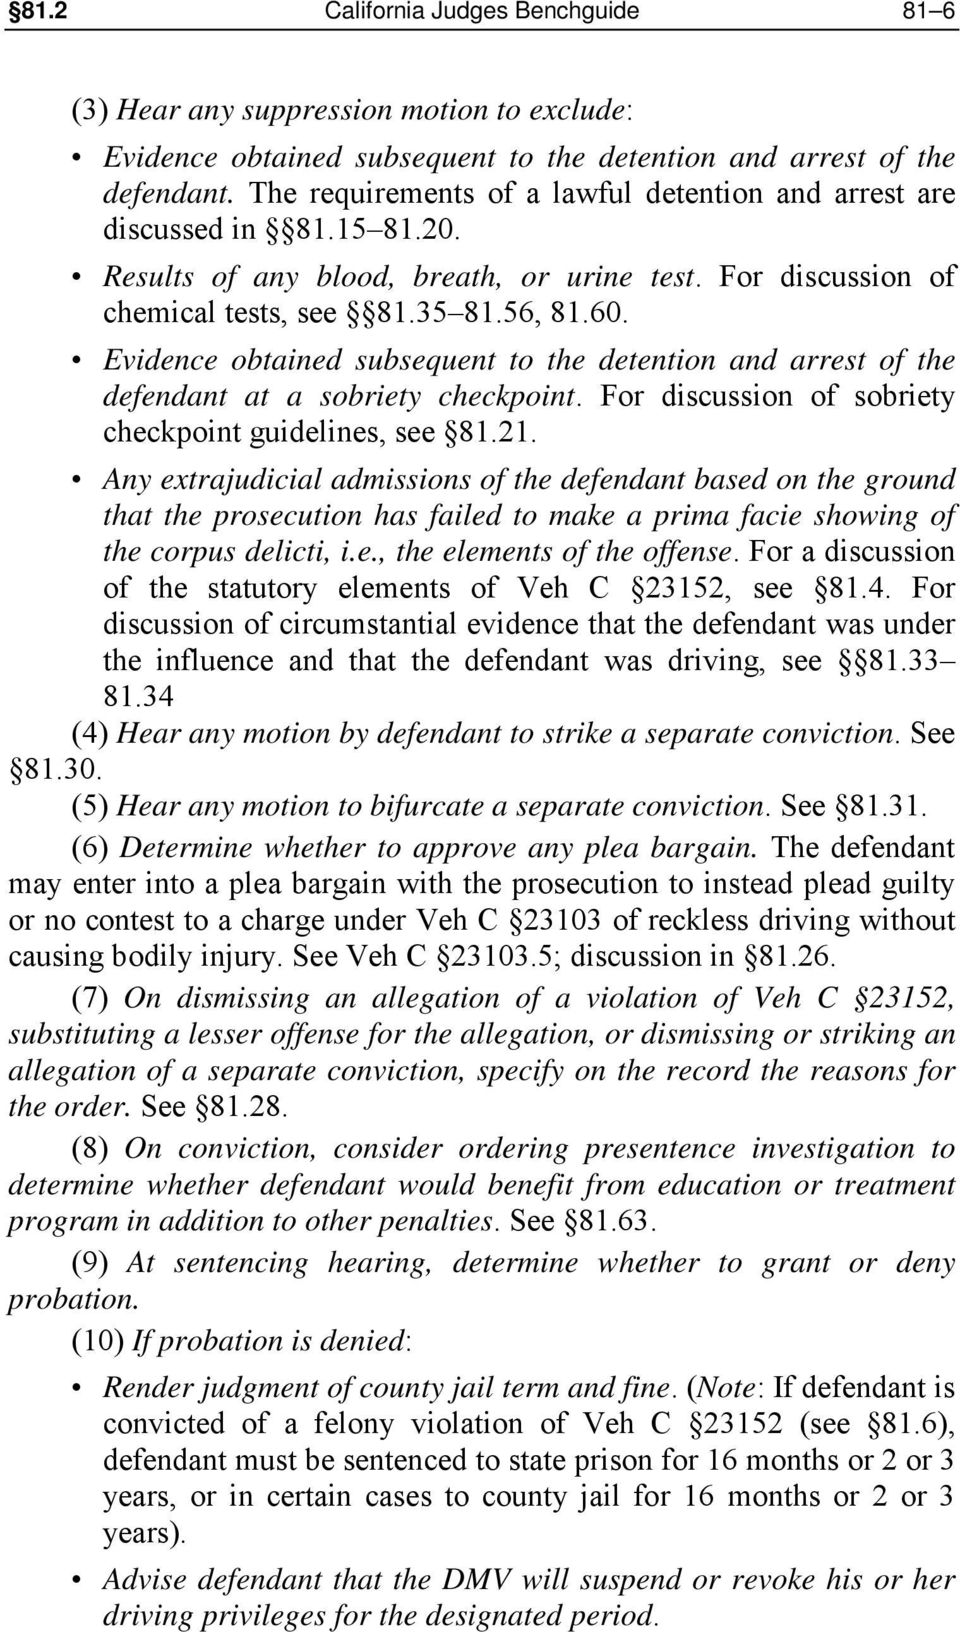 Evidence obtained subsequent to the detention and arrest of the defendant at a sobriety checkpoint. For discussion of sobriety checkpoint guidelines, see 81.21.